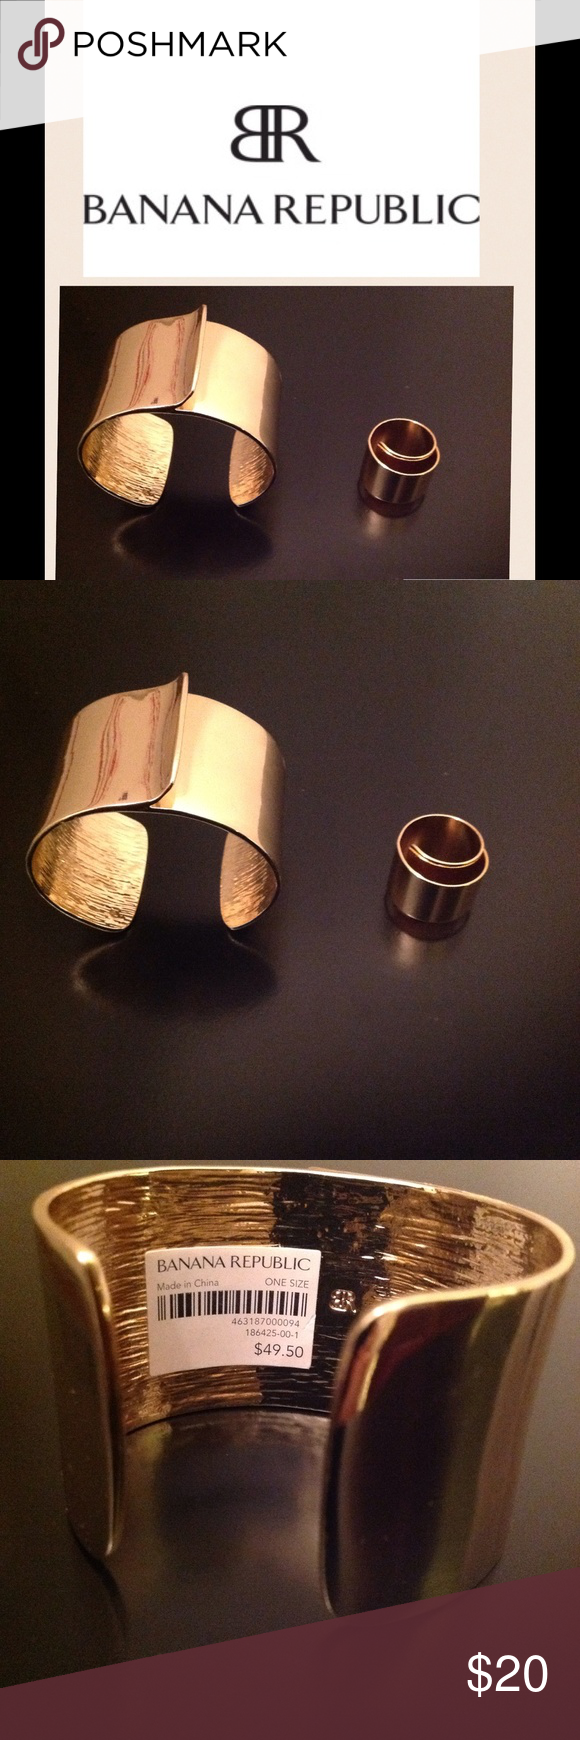 NEW BR gold tone ring and cuff bracelet. NEW with tags Banana Republic gold tone ring and cuff bracelet.  Ring size 8.  Ring original price $39.50 and cuff bracelet original price $49.50.  No trades. Jewelry Bracelets